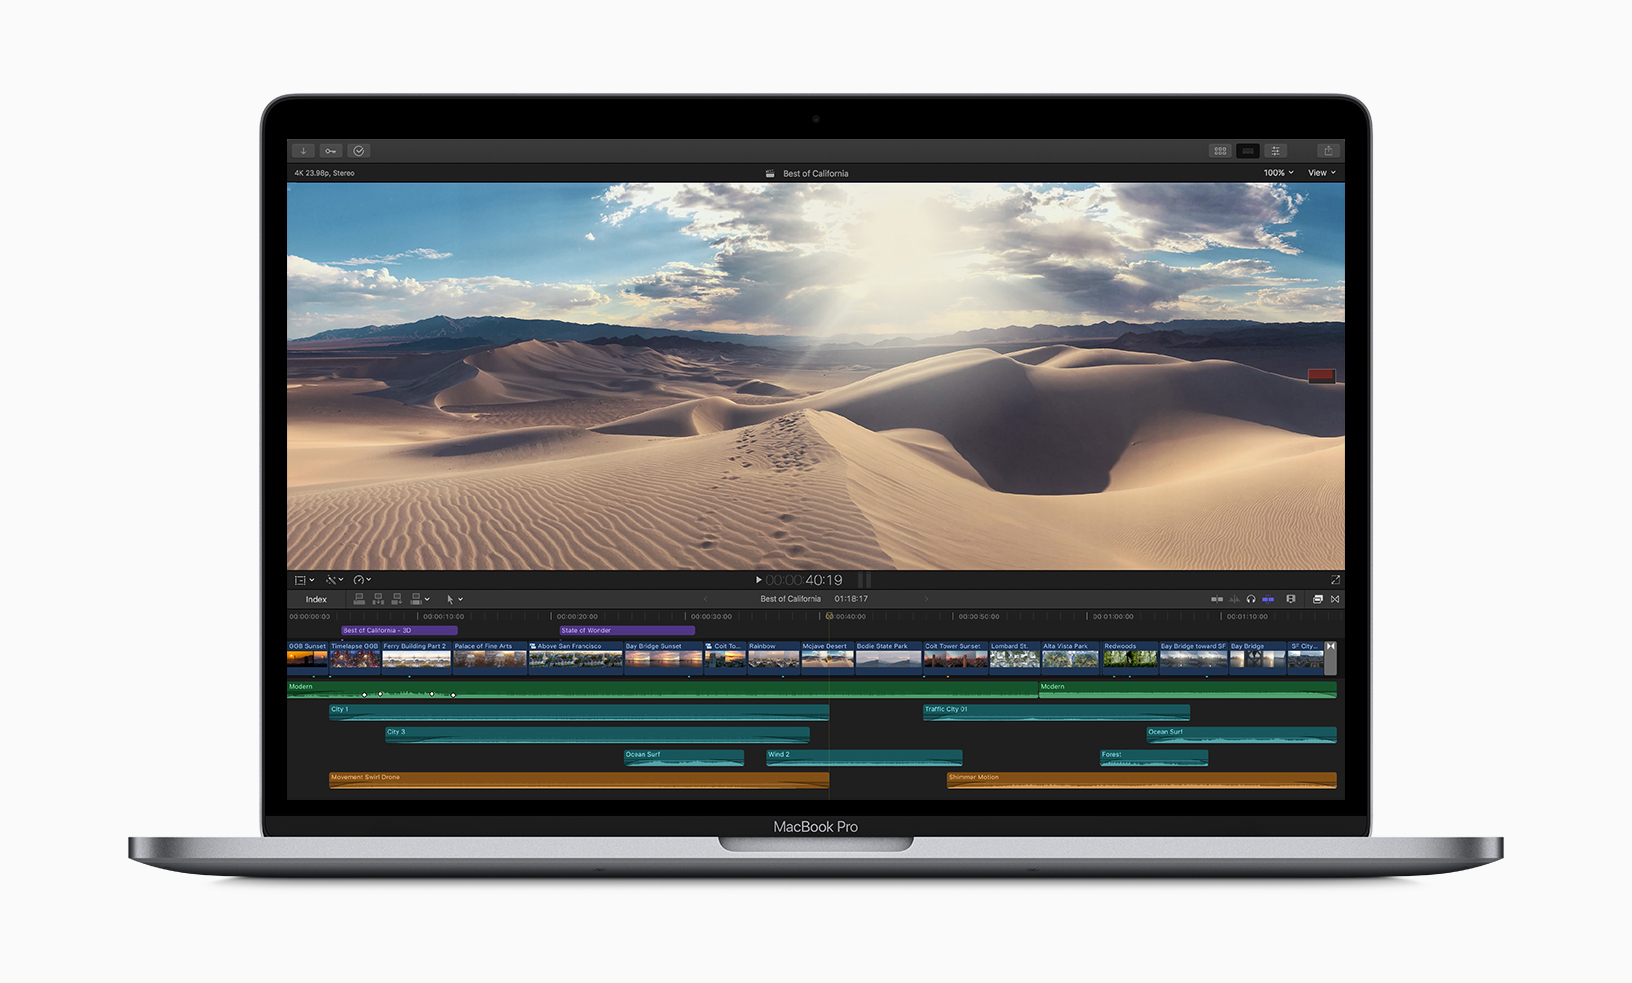 apple_macbookpro-8-core_video-editing_05212019.jpg